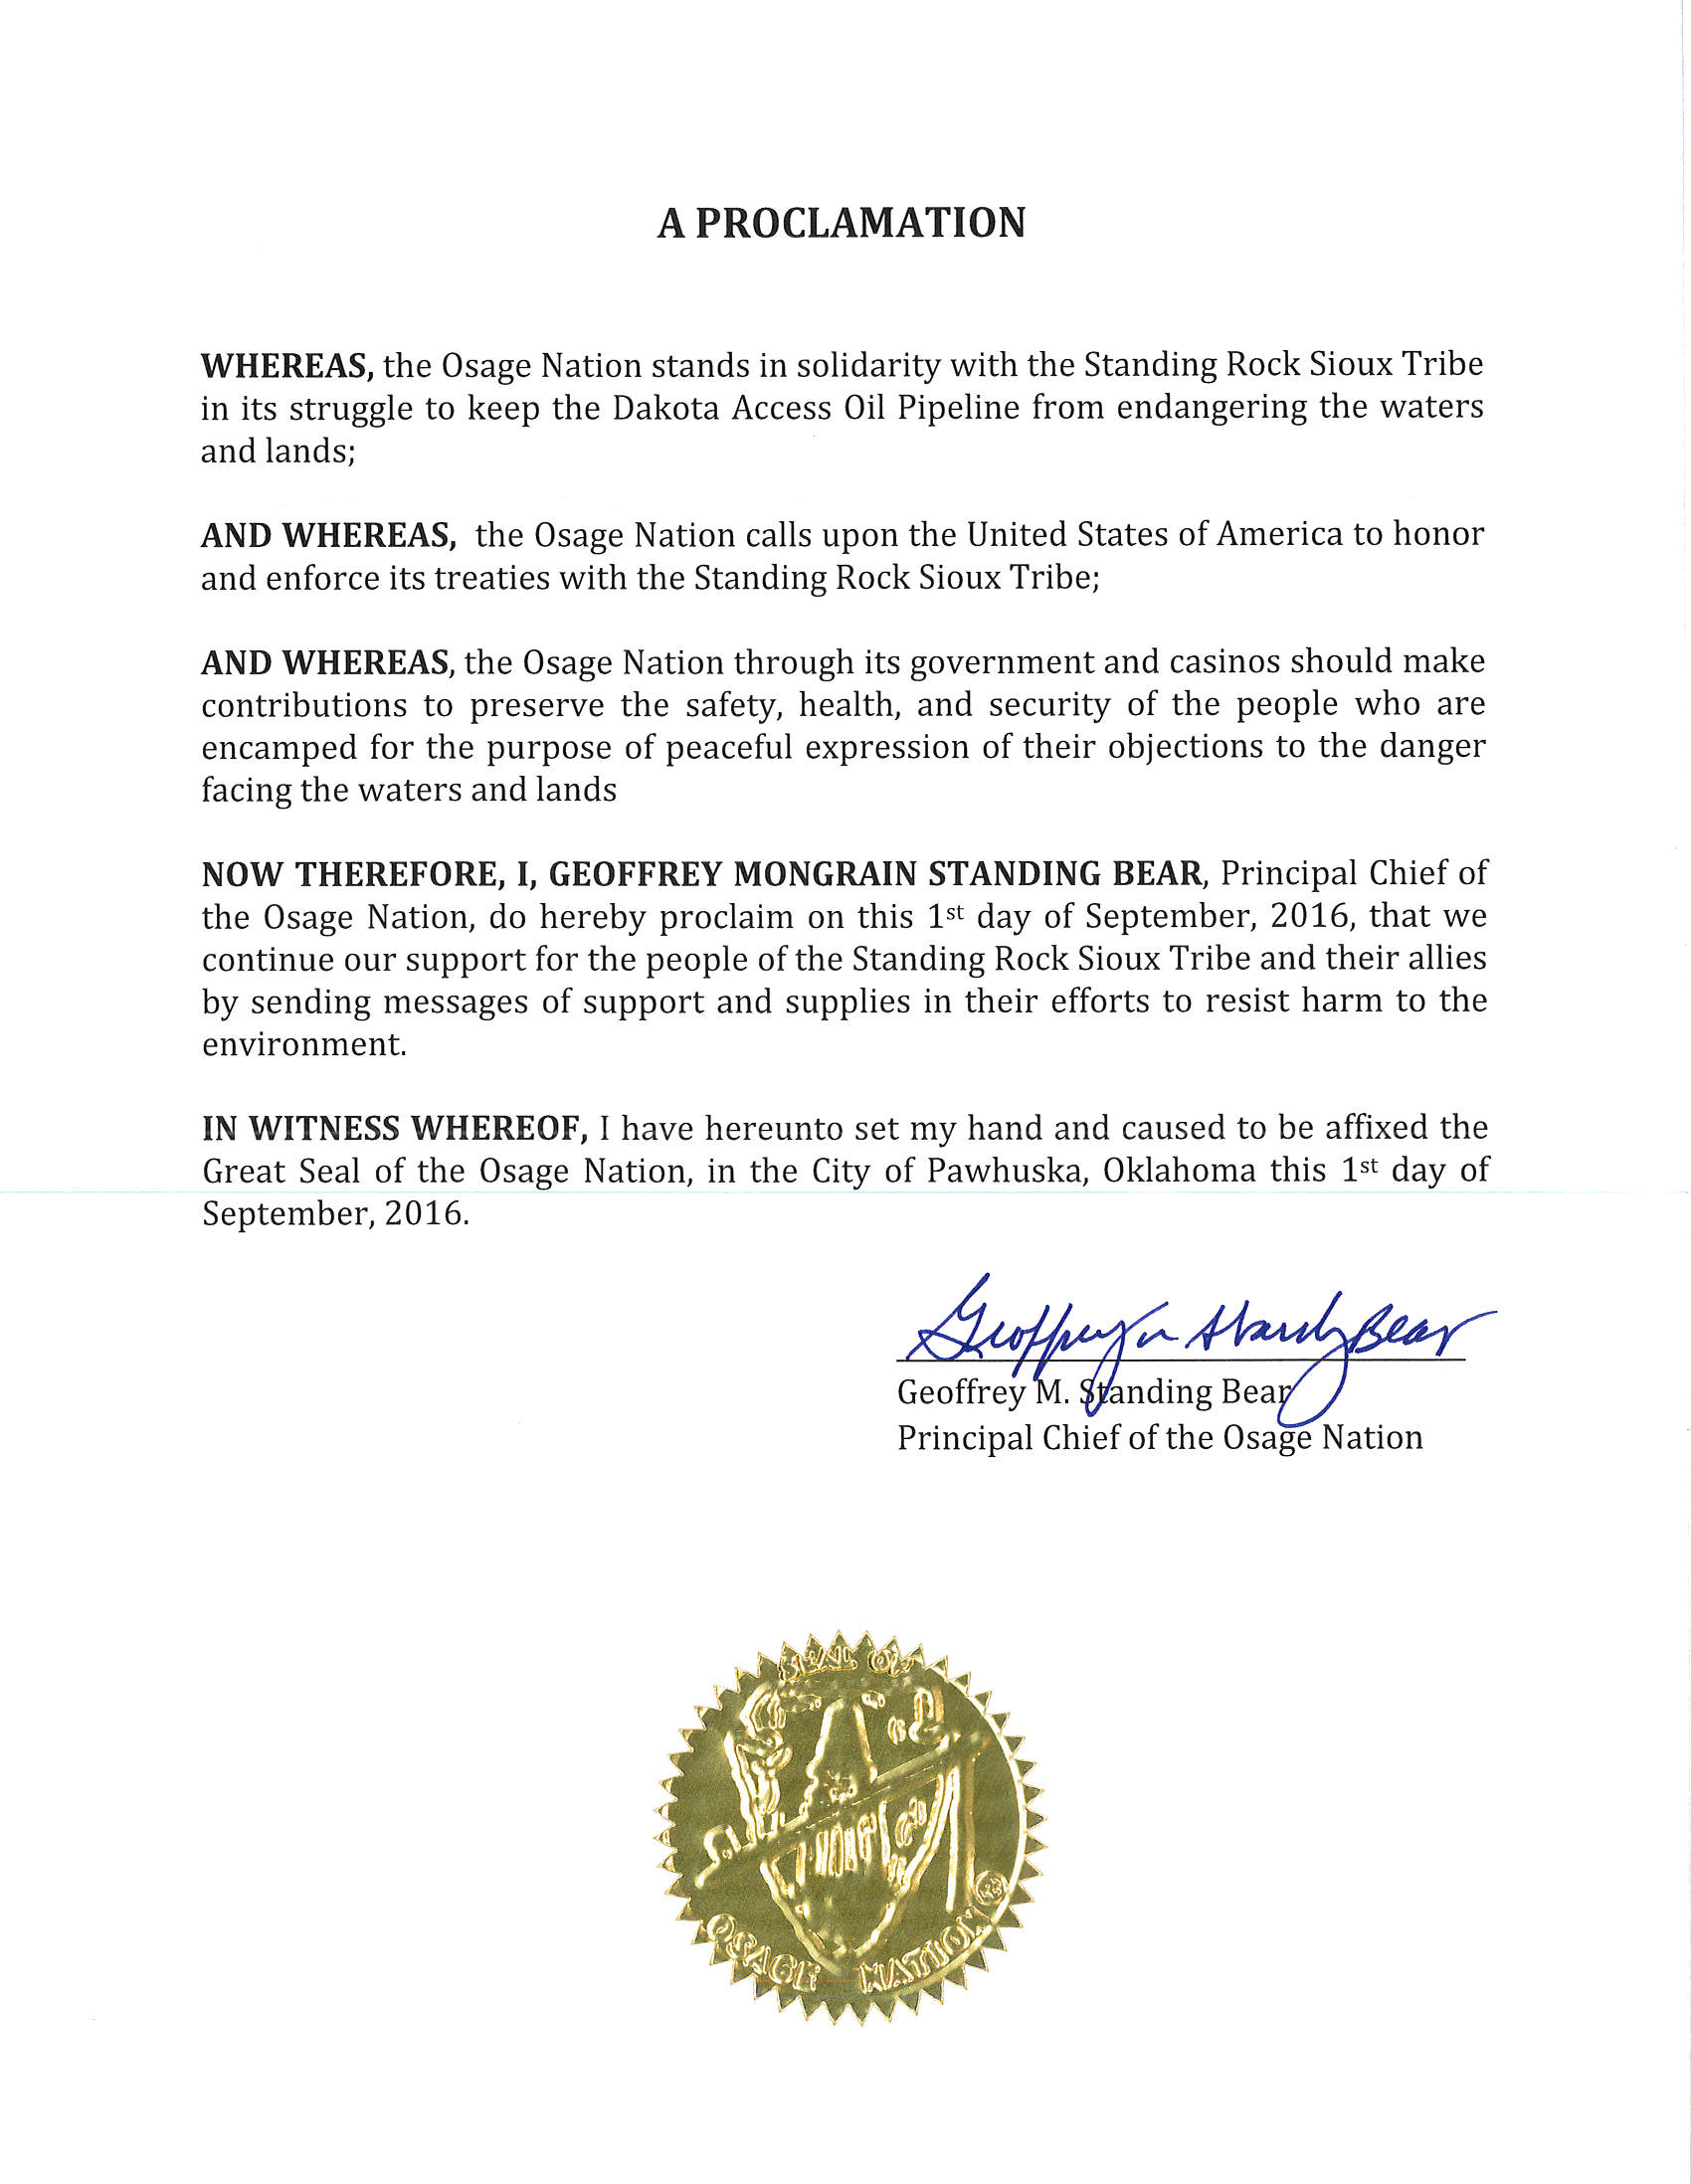 ON Principal Chief Geoffrey Standing Bear issues proclamation in support of the Standing Rock Sioux Tribe